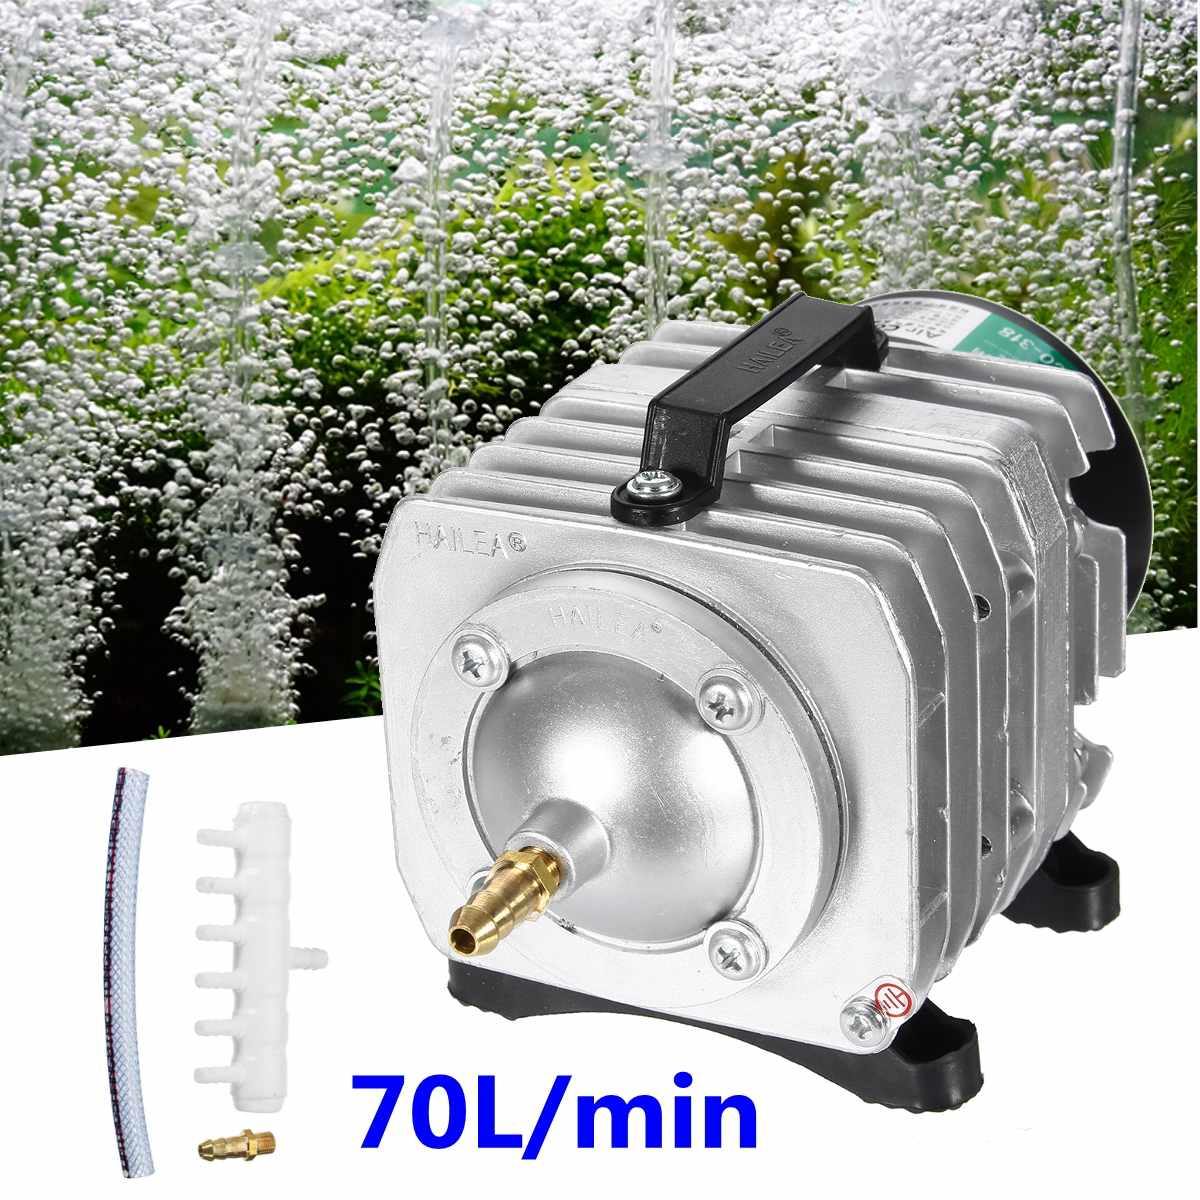 45W 220V 70L/min Electromagnetic Air Compressor Pump Oxygen Aquarium Fish Pond Compressor Hydroponic Air Aerator Pump ACO-318